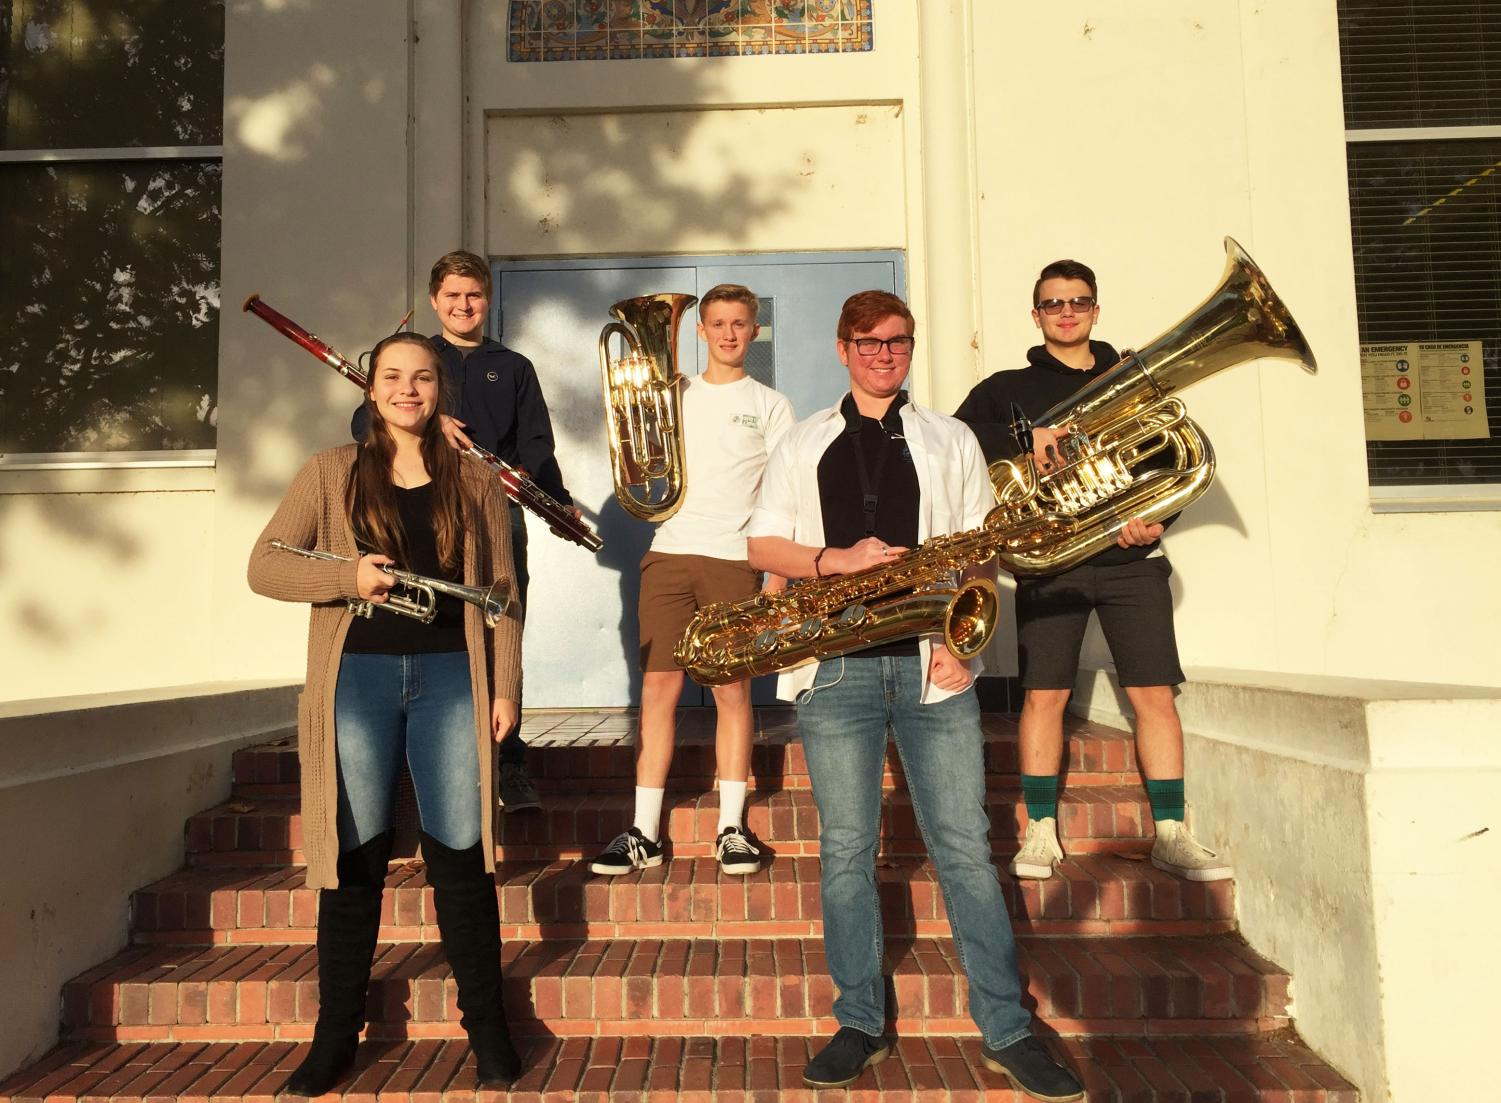 From left to right: Nathaniel Morris, Taylor Reed, JD Frakes, Presley Golling, and Richard Posey. These five students will be a part of the Honor Band and Orchestra for Kern County.